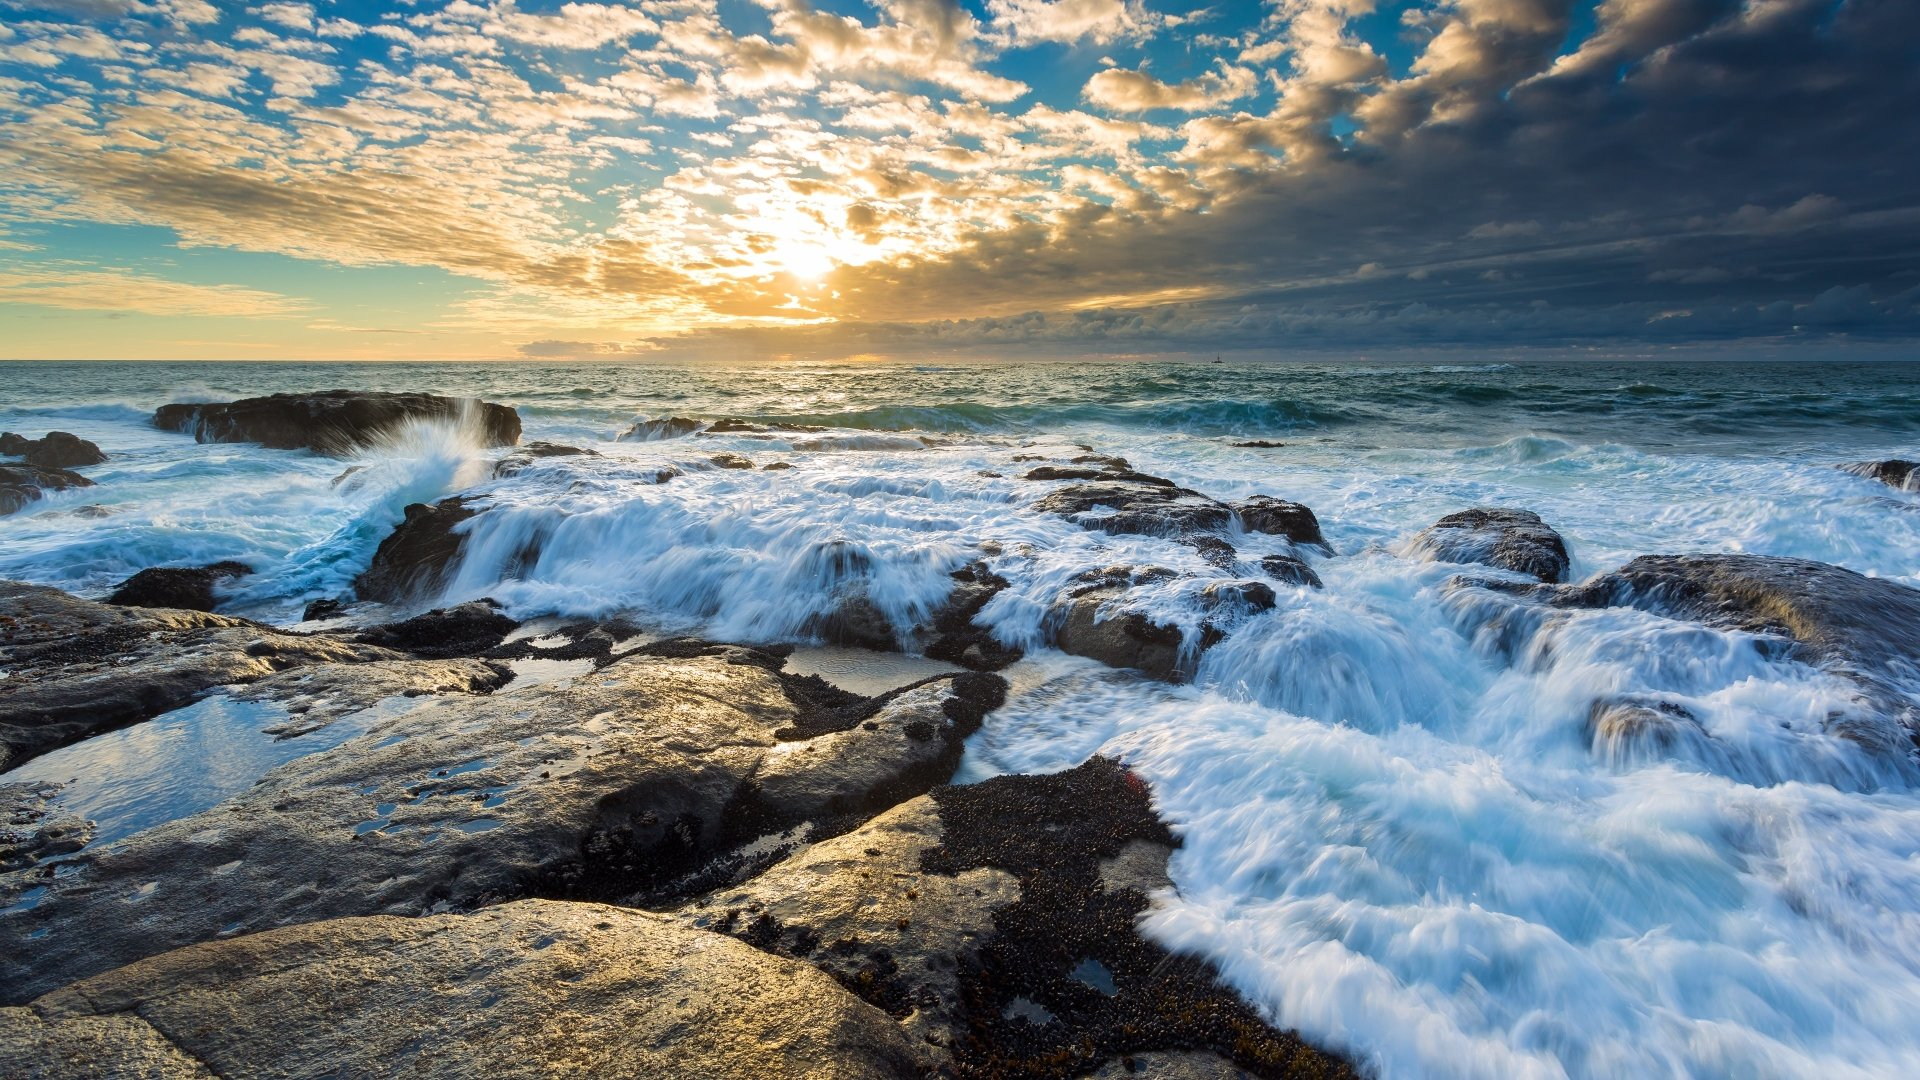 Wallpapers Rocky Beach Desktop Wallpapers: Rocky Seascape 4k Ultra HD Wallpaper